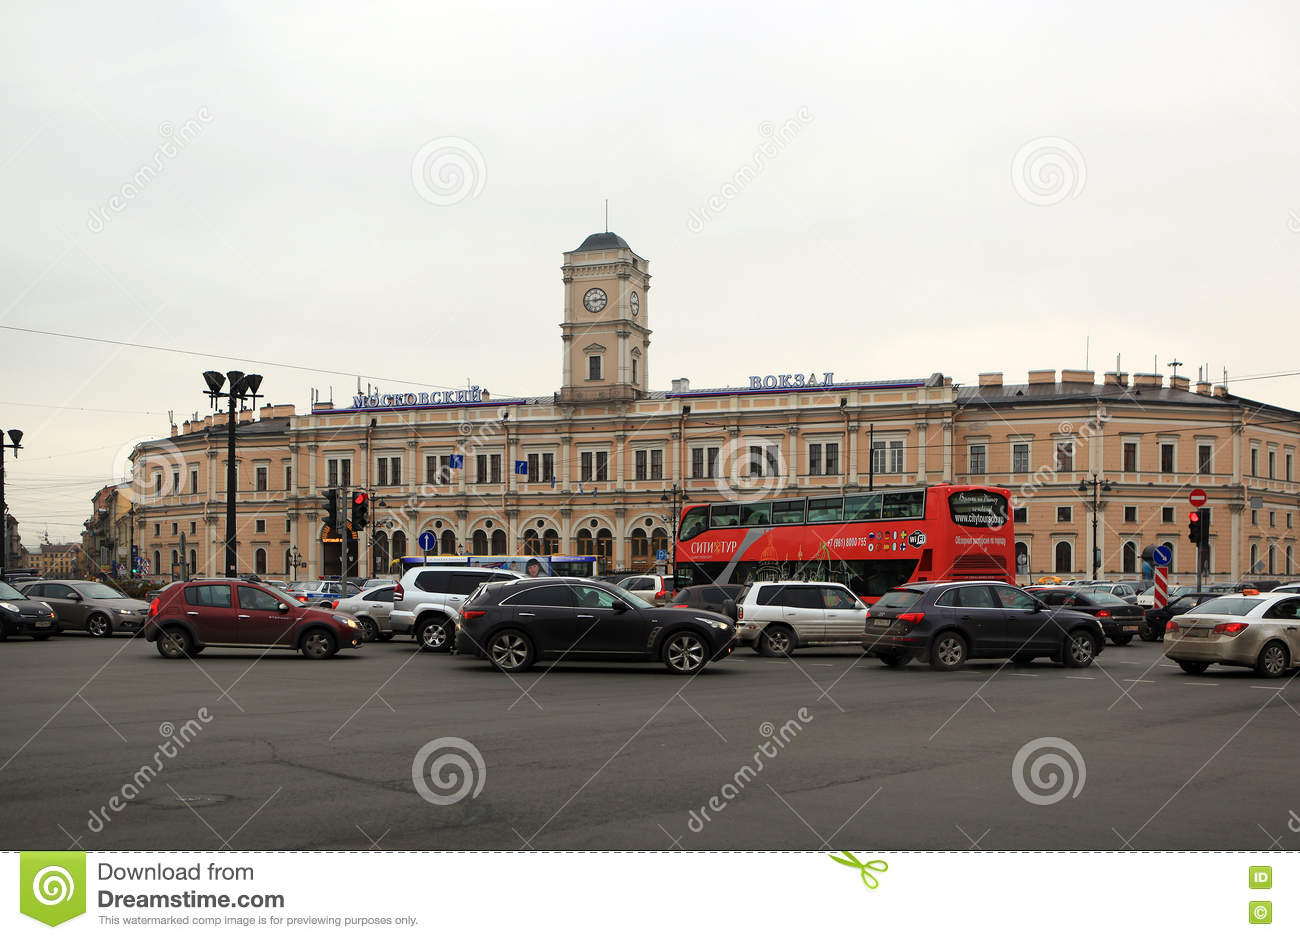 Moscow railway station of St. Petersburg. How to get to Moskovsky railway station